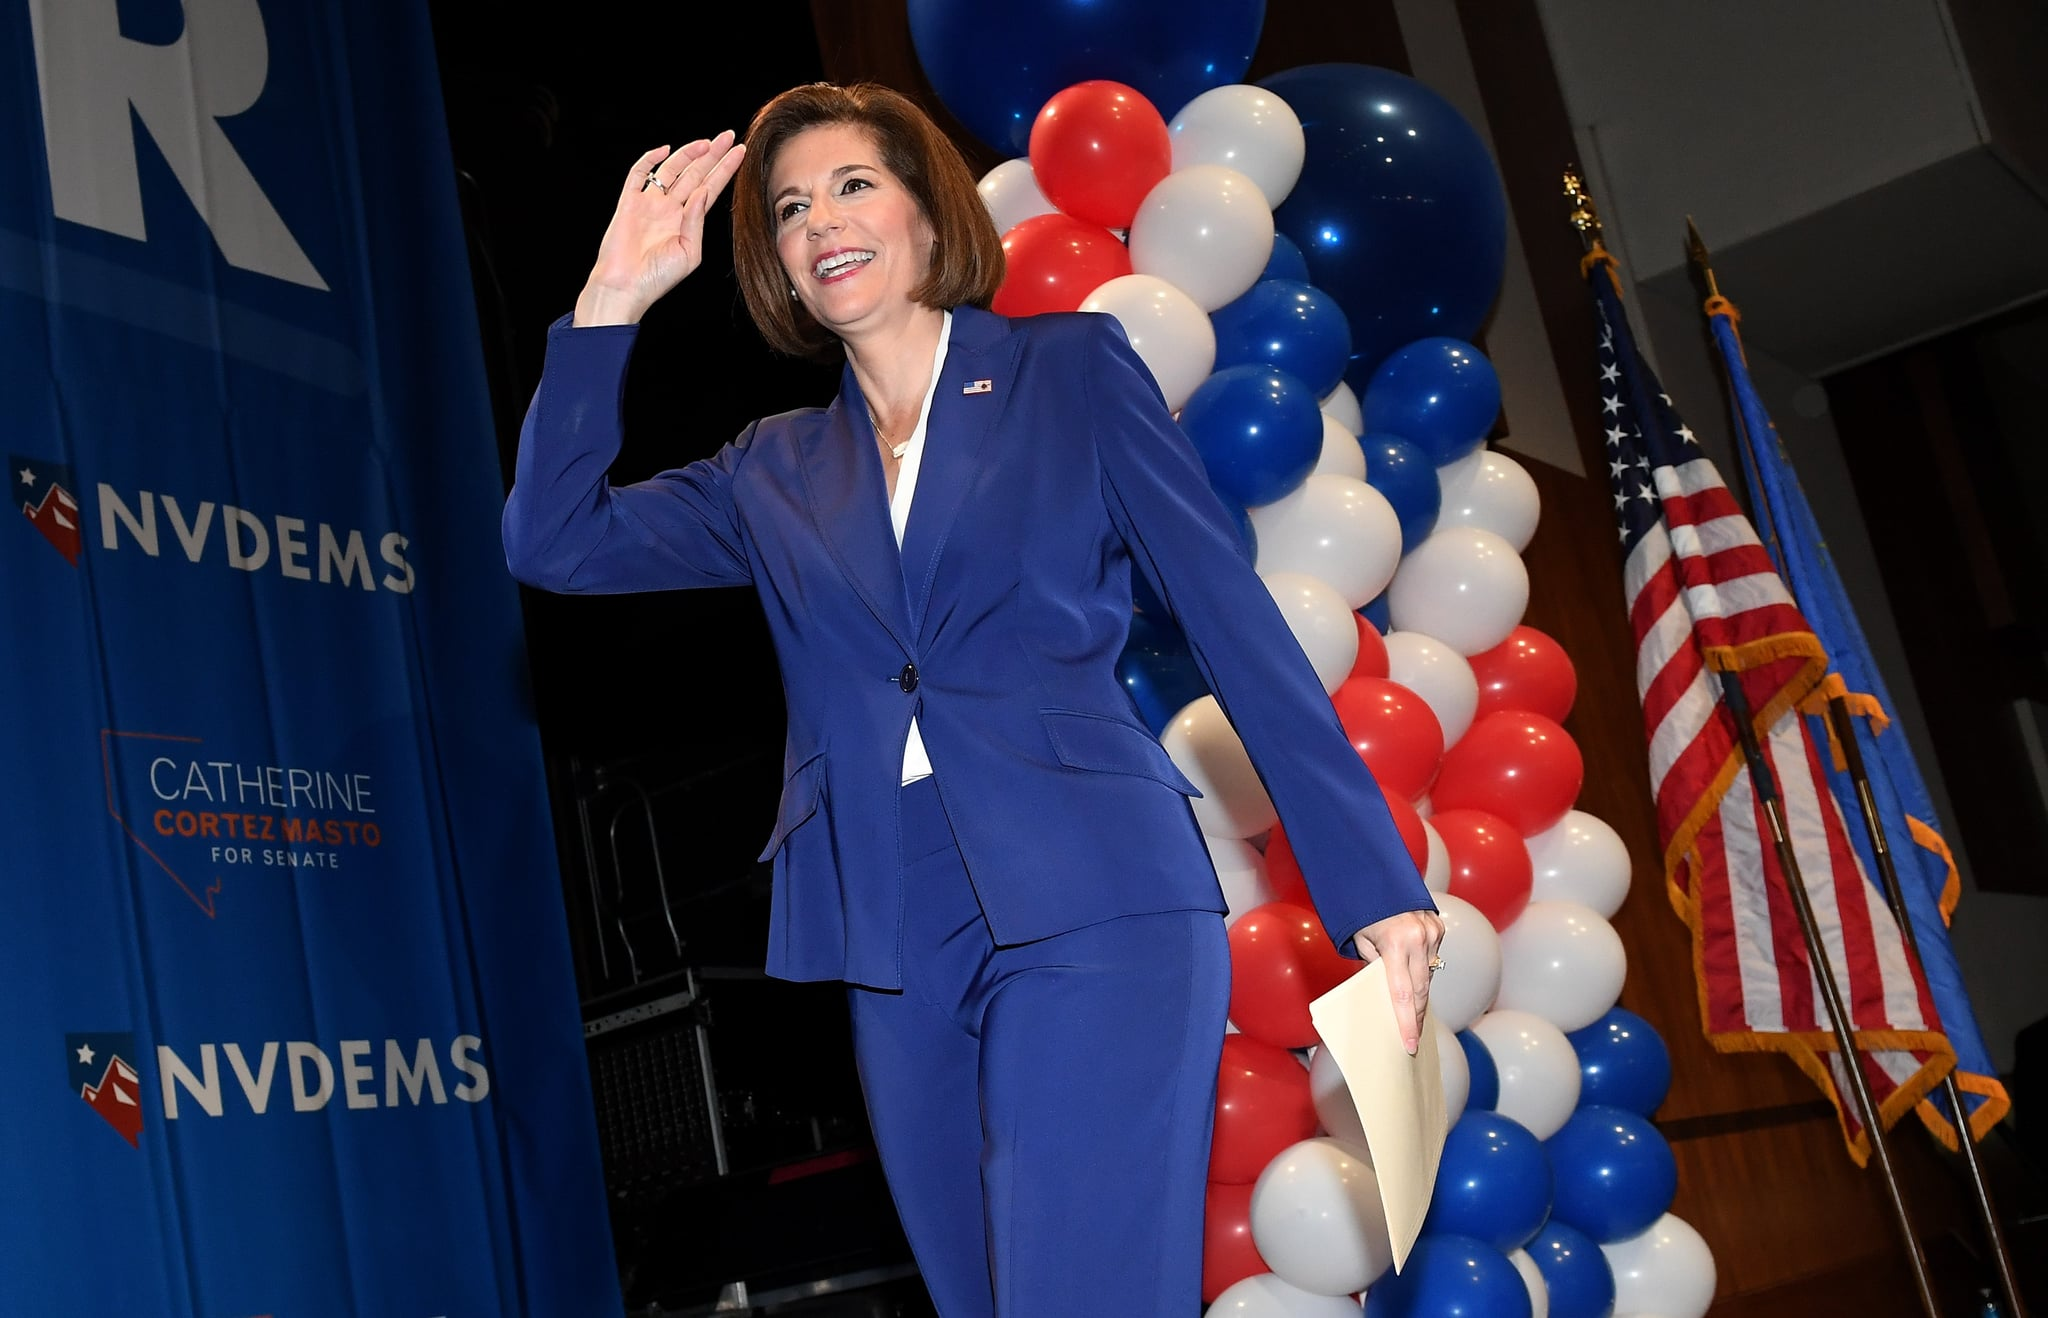 Women Record Several 'Firsts' With Wins In US Senate, Elsewhere